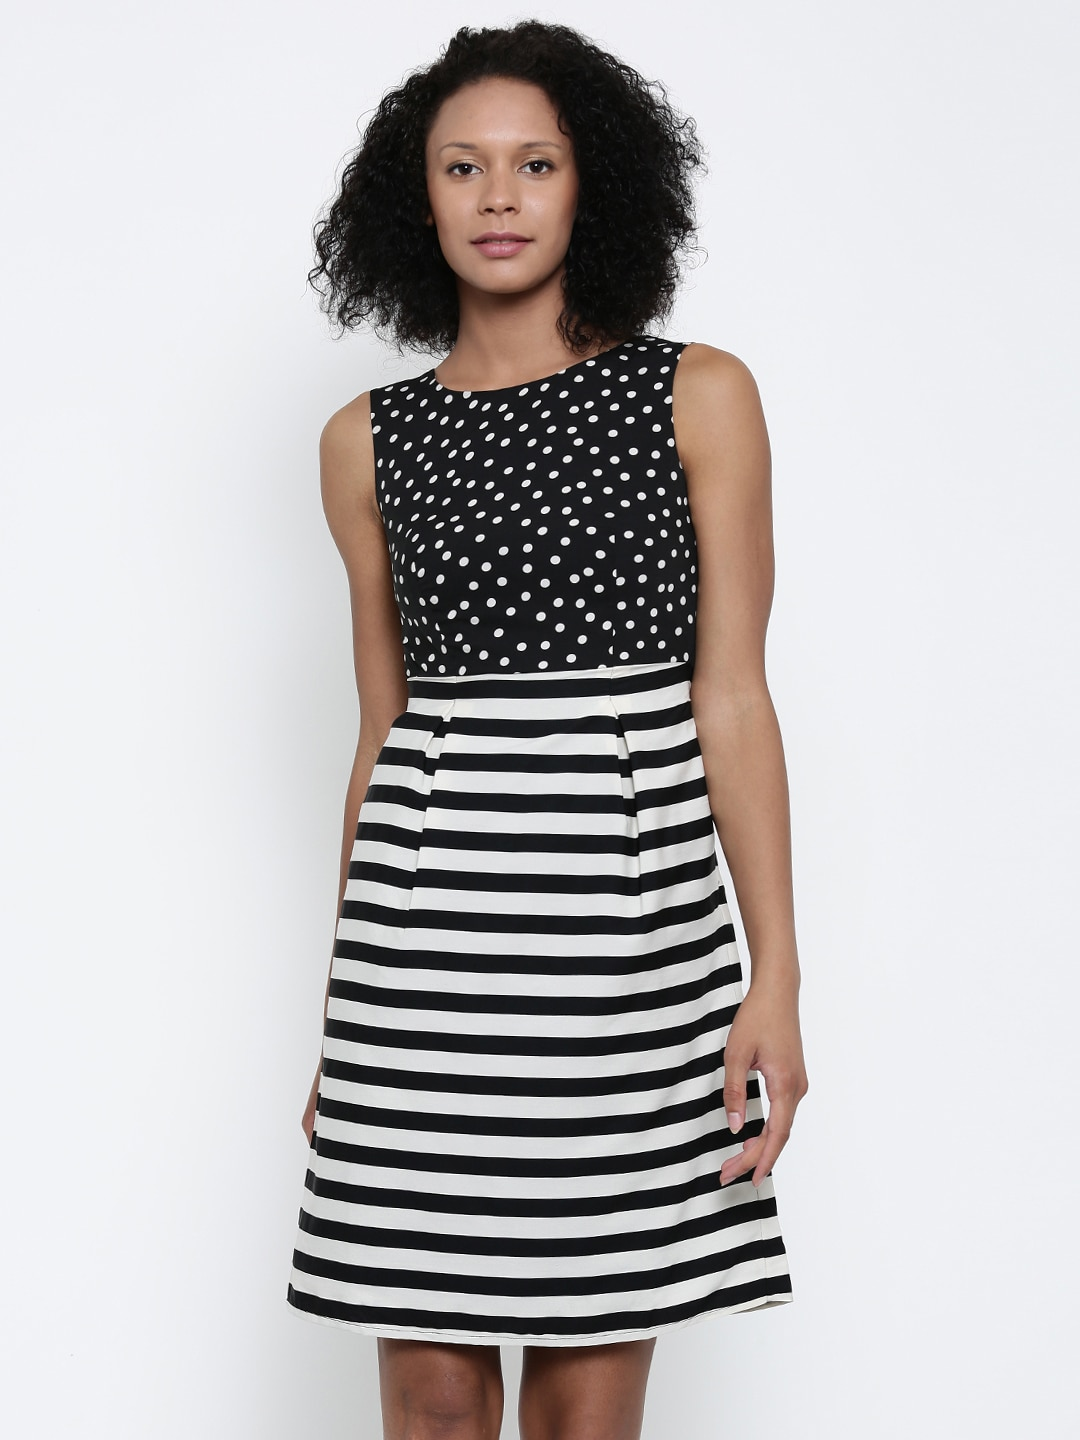 Park Avenue Woman Black & Off-White Striped Fit & Flare Dress image